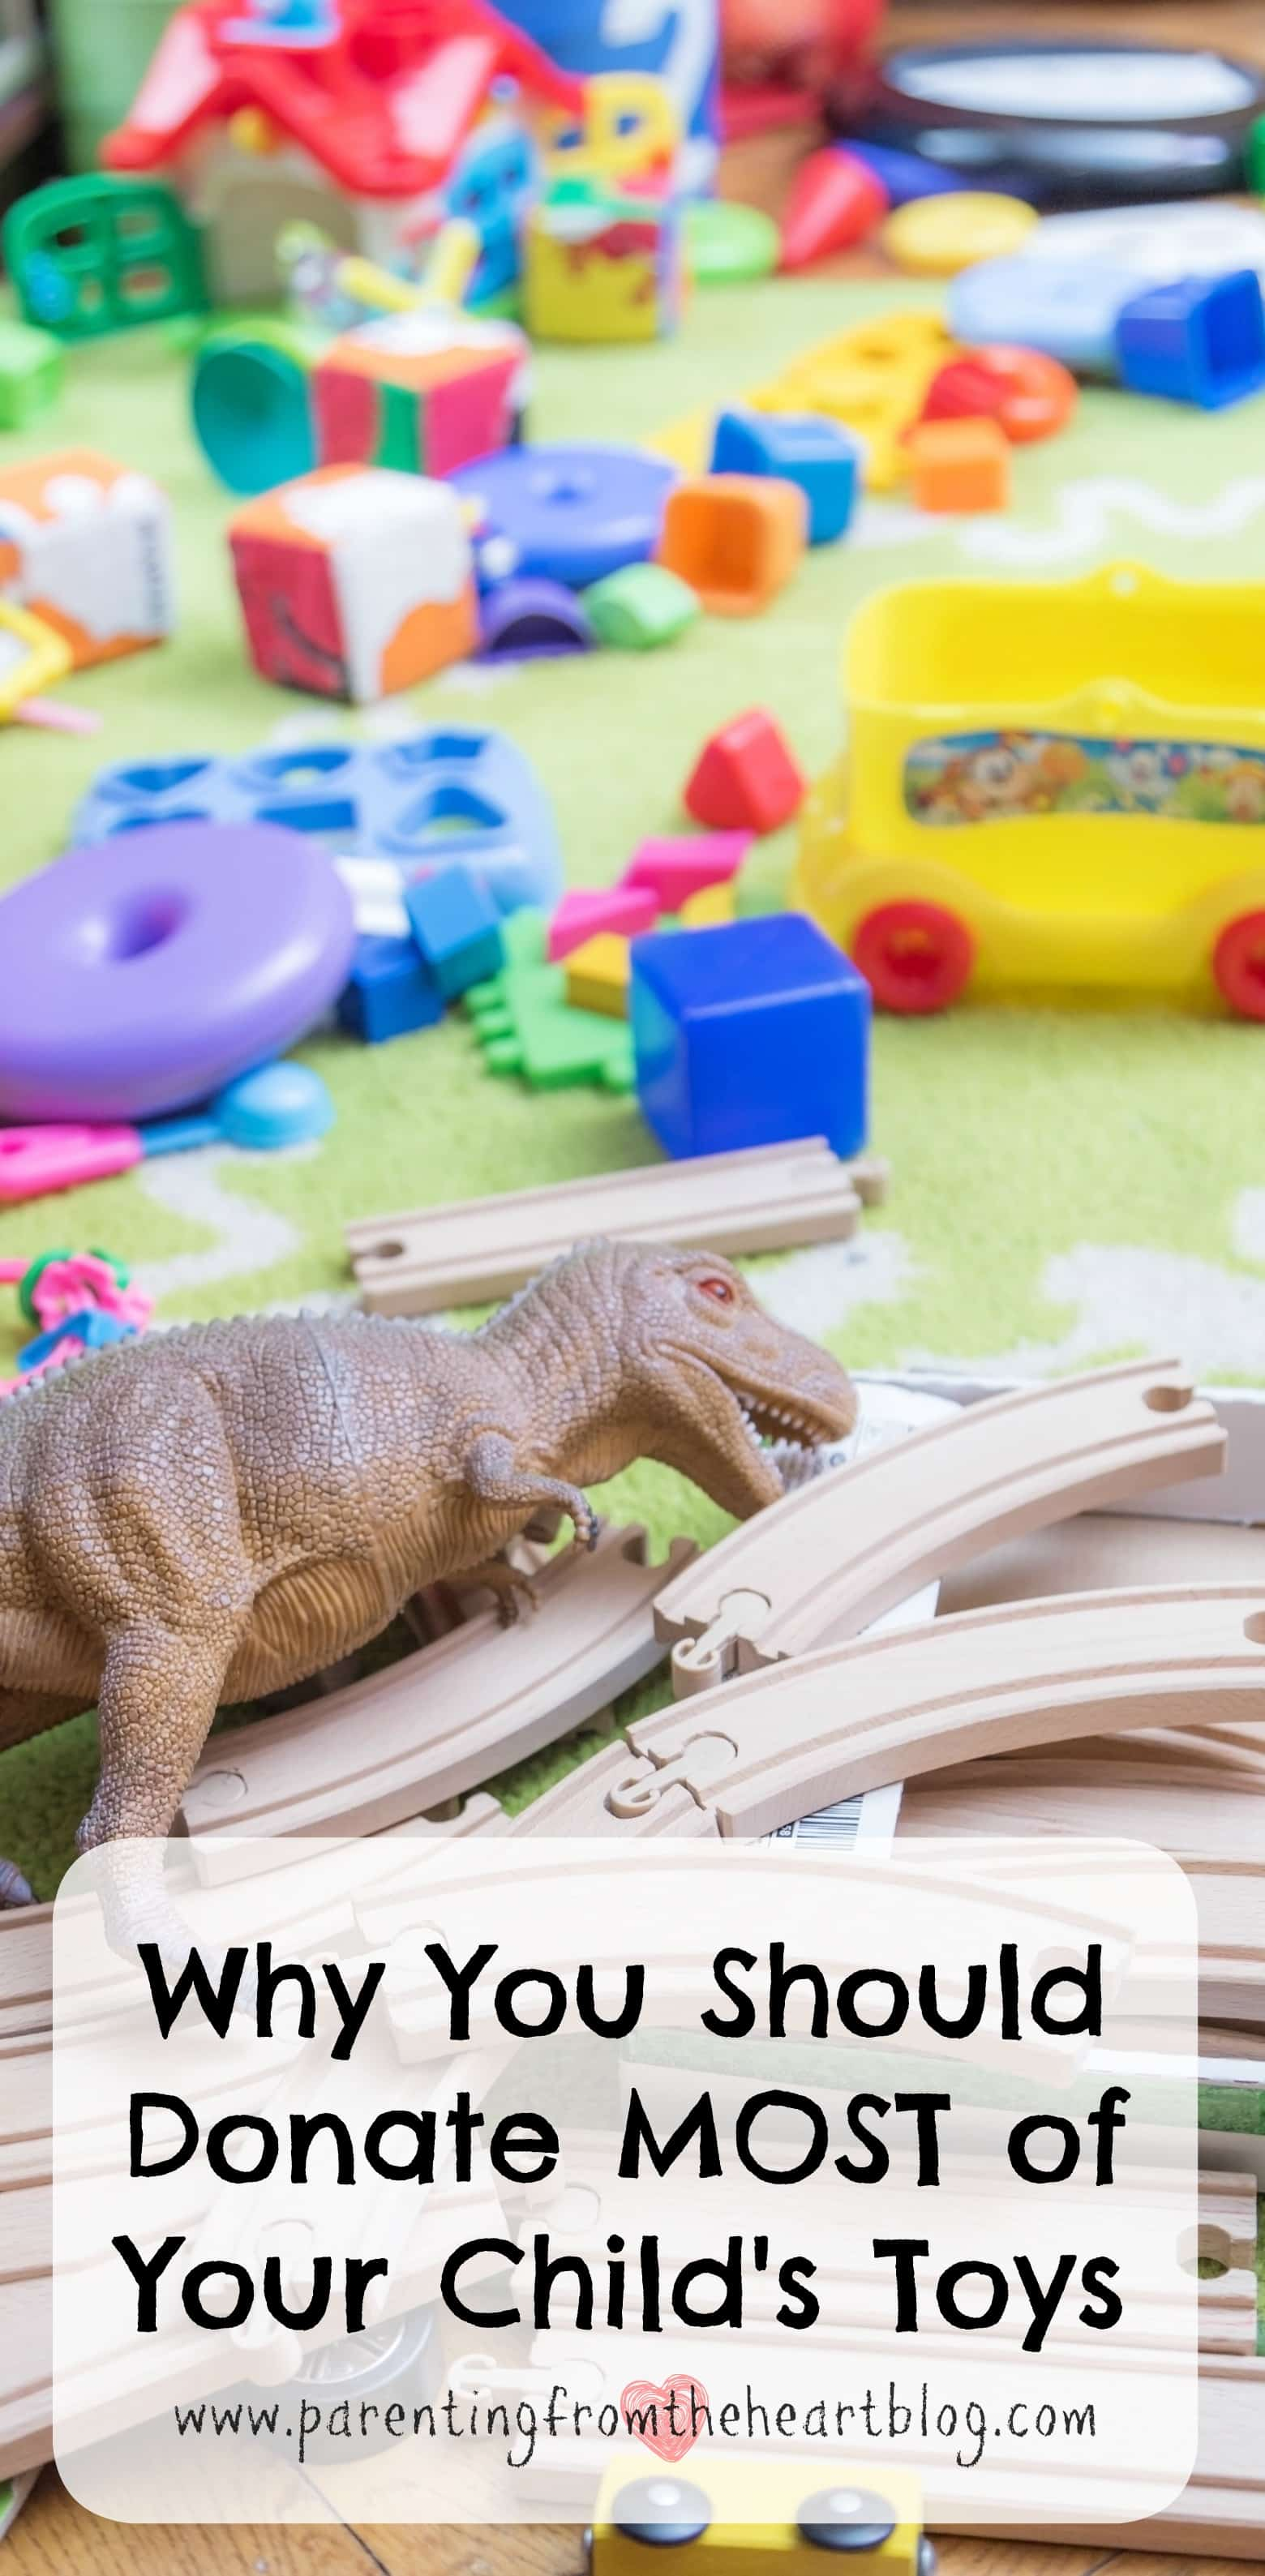 Should you get rid of most of your kids toys? You'll want to click through to find out what research has found. Also, find strategies to get your kids to clean up, involve them in donating toys, and more!